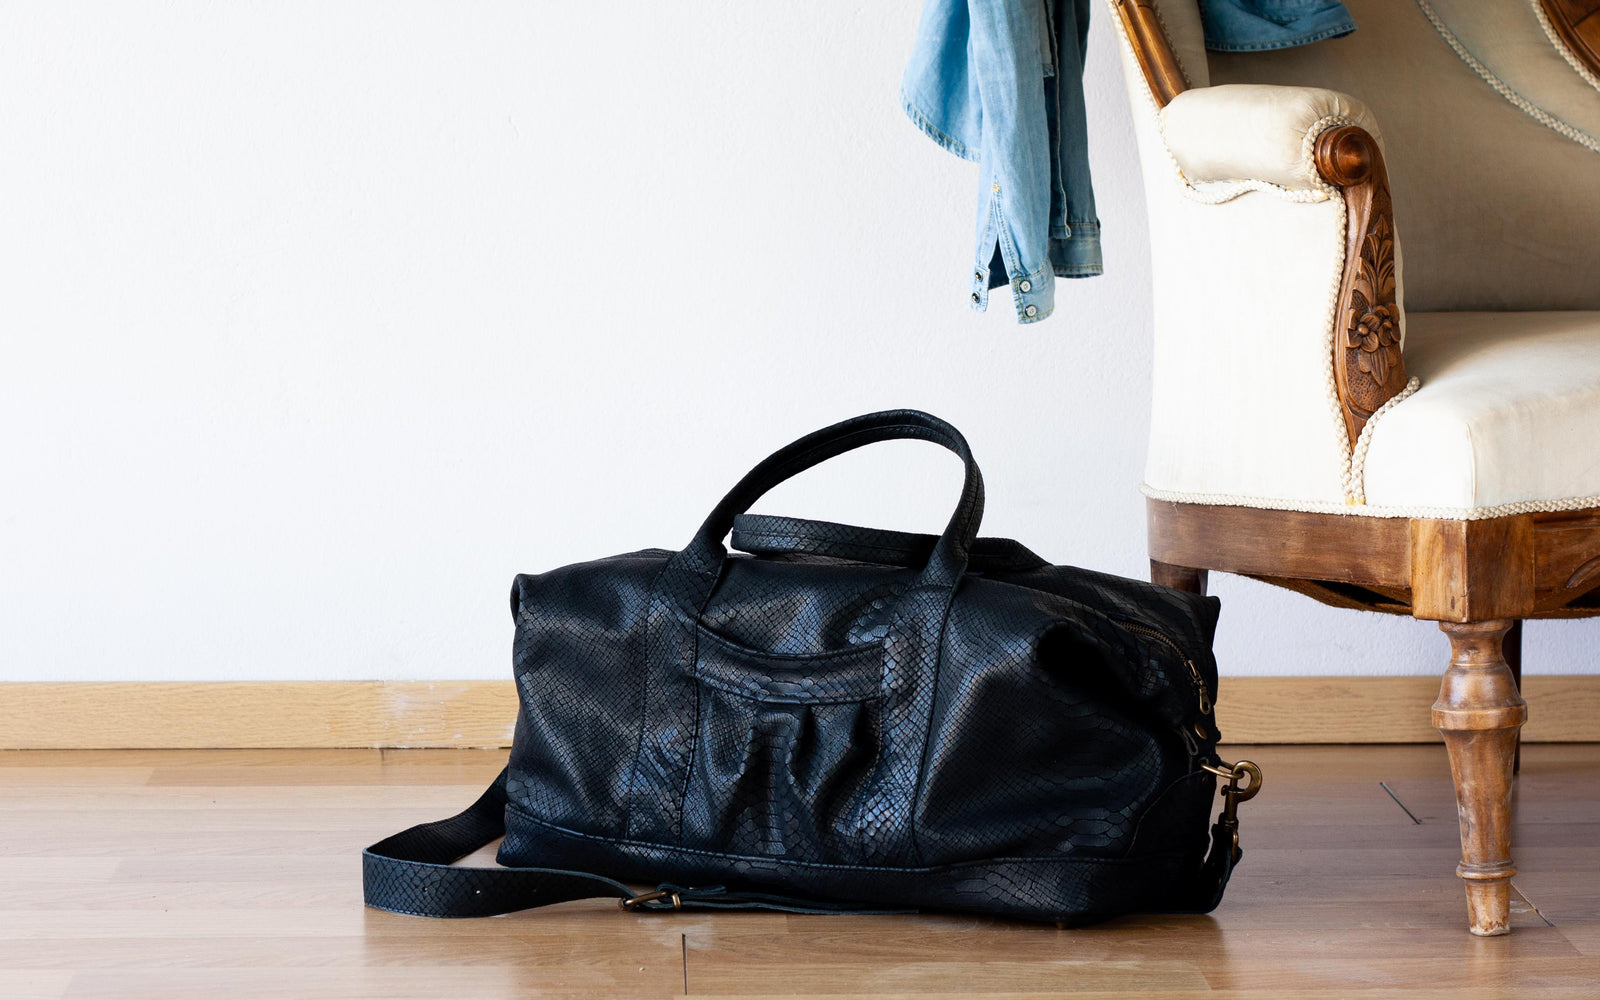 The Nephele duffel bag in black snakeskin leather by milloo